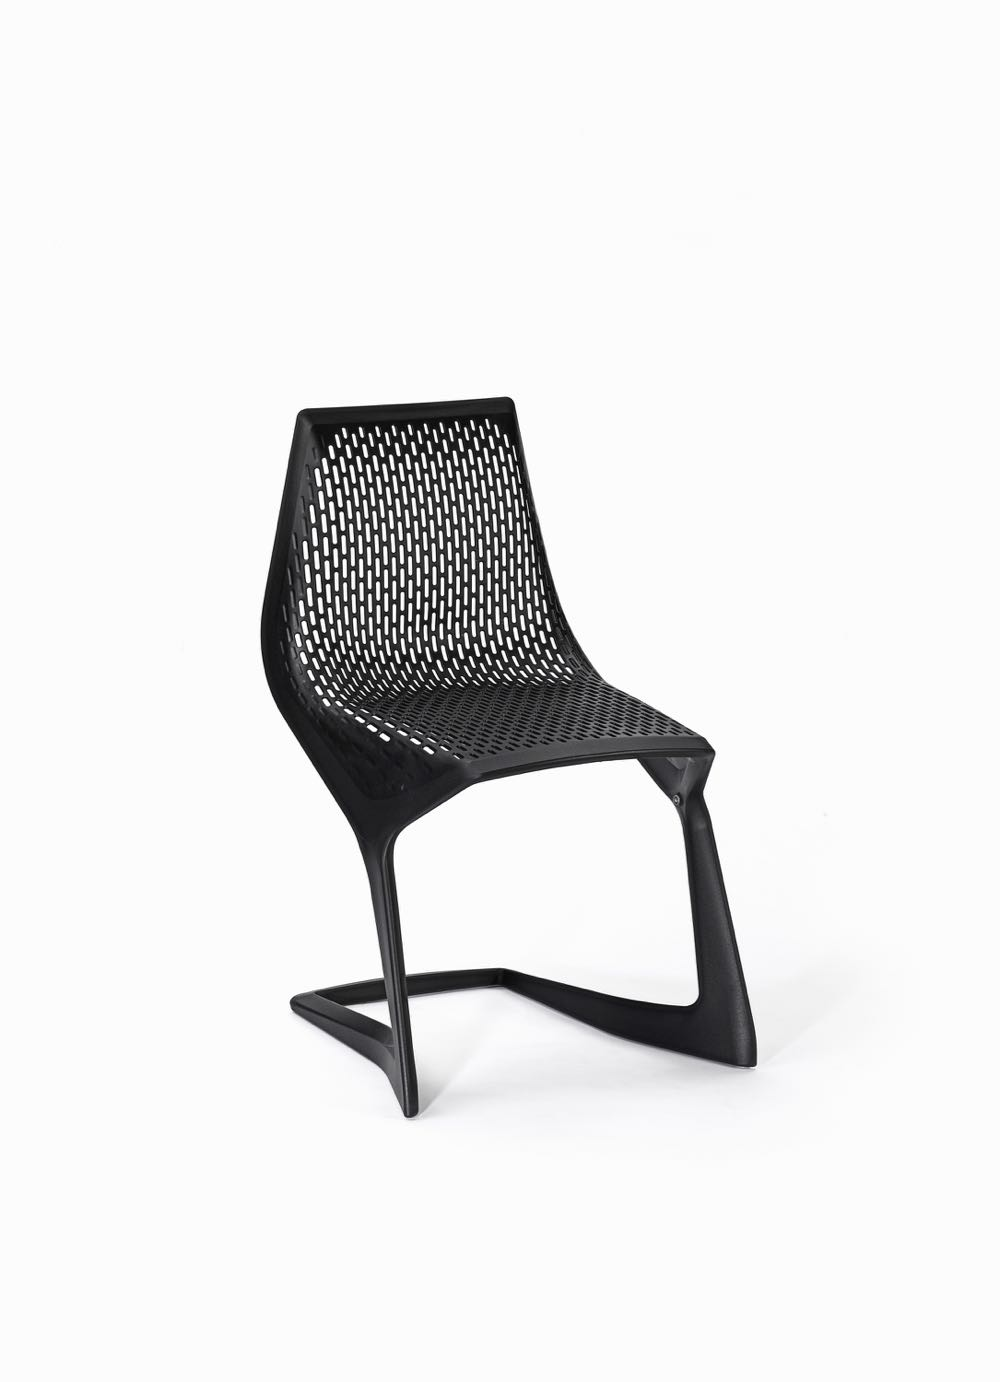 Konstantin Grcic 'Myto' chair designed in 2006, manufactured by Plank, Ora Italy. Thermoplastic polyester 82 x 55 x 45 cm